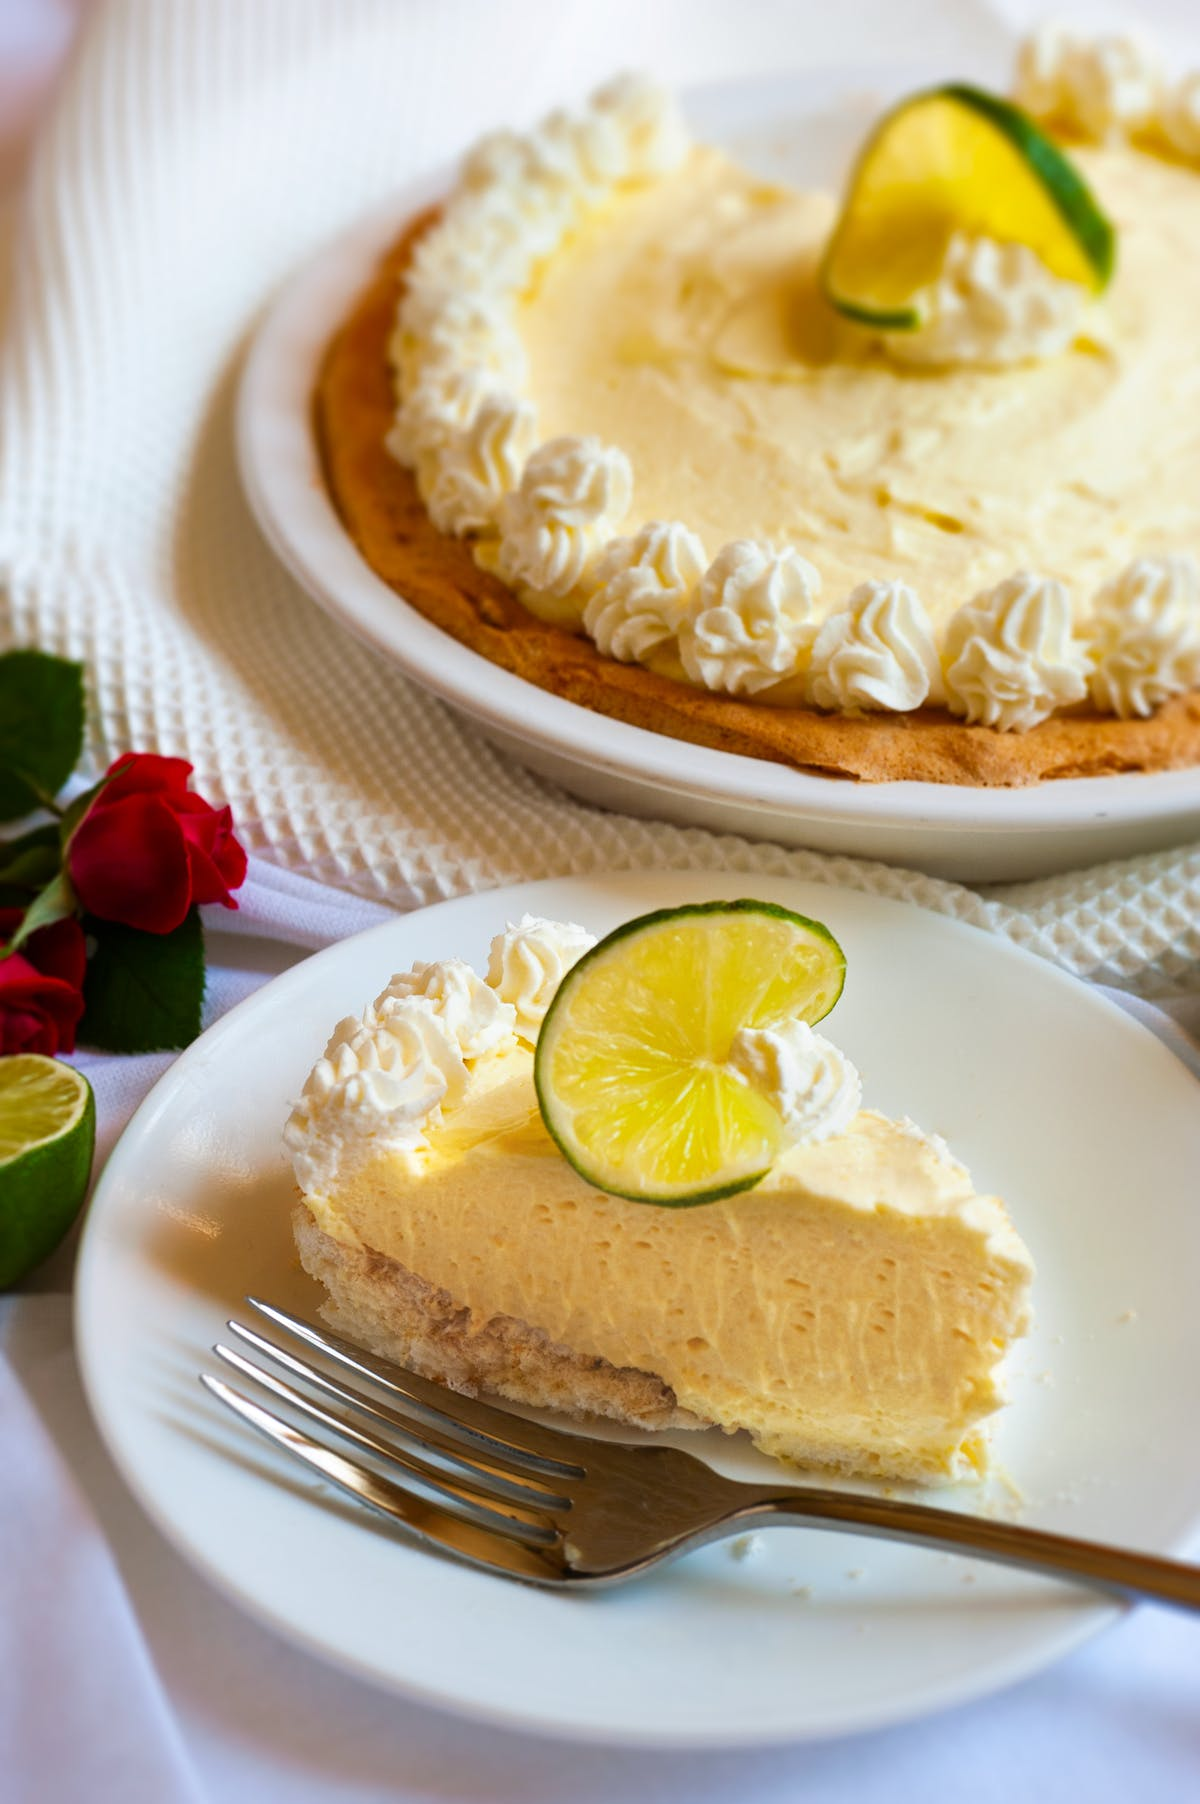 Low-carb Key lime pie with meringue crust